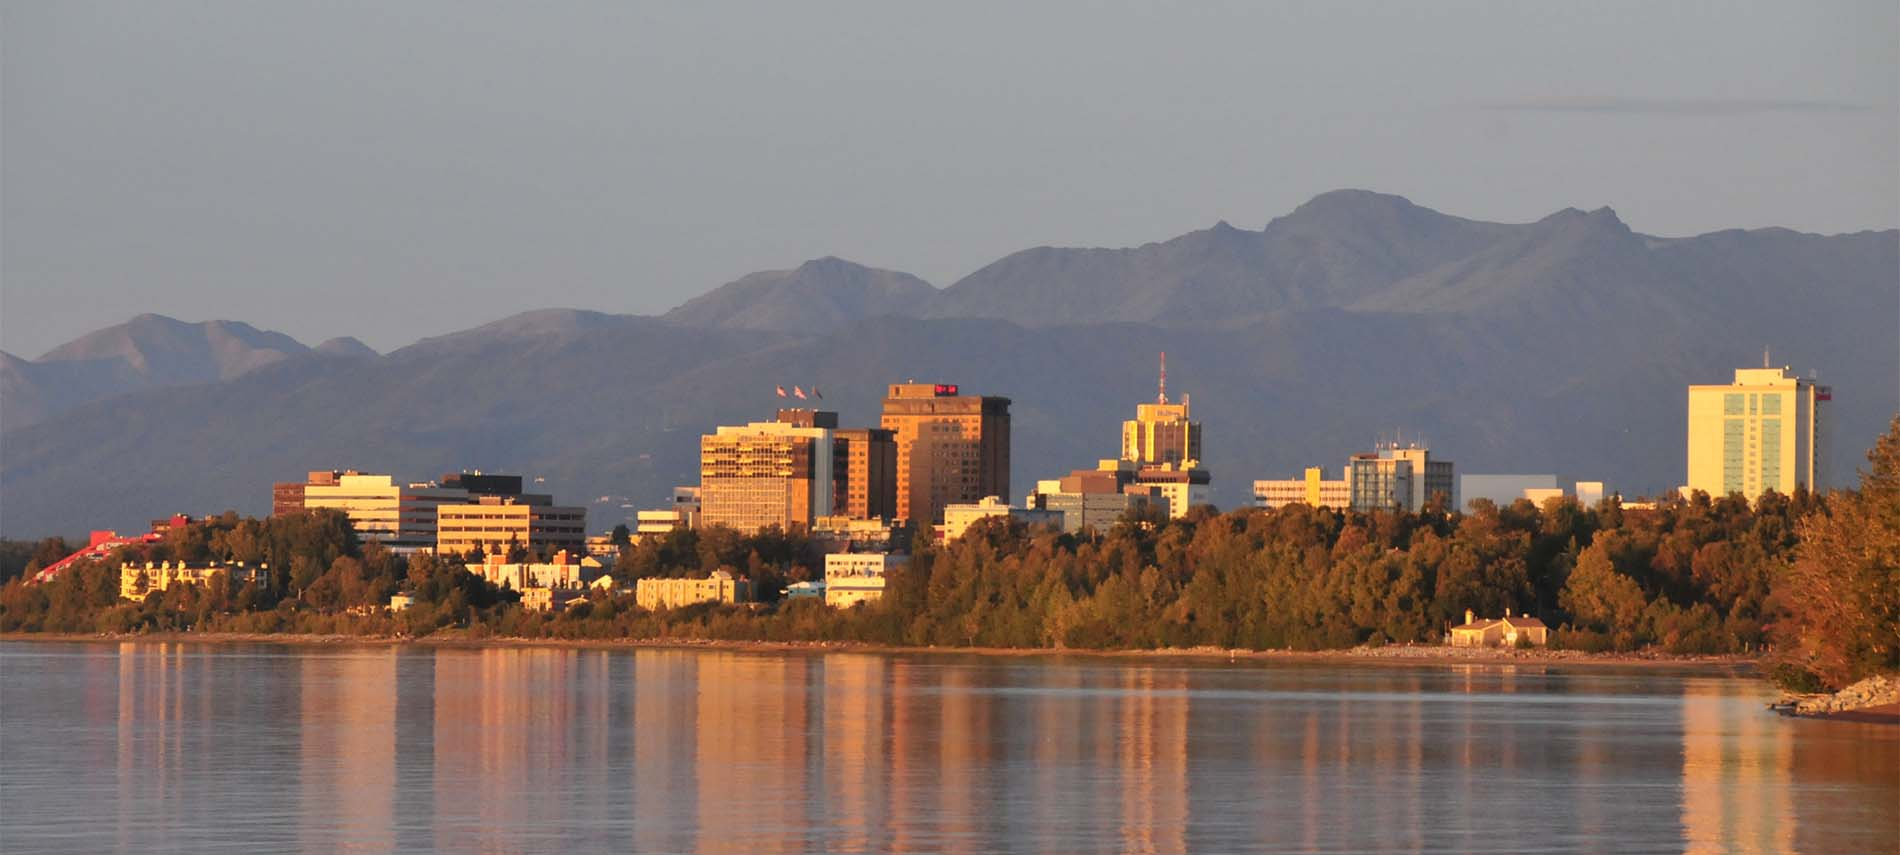 Snow-free mountain background with sun-drenched tall city buildings reflected in foreground's lake; fall's orange tinged trees surround lake